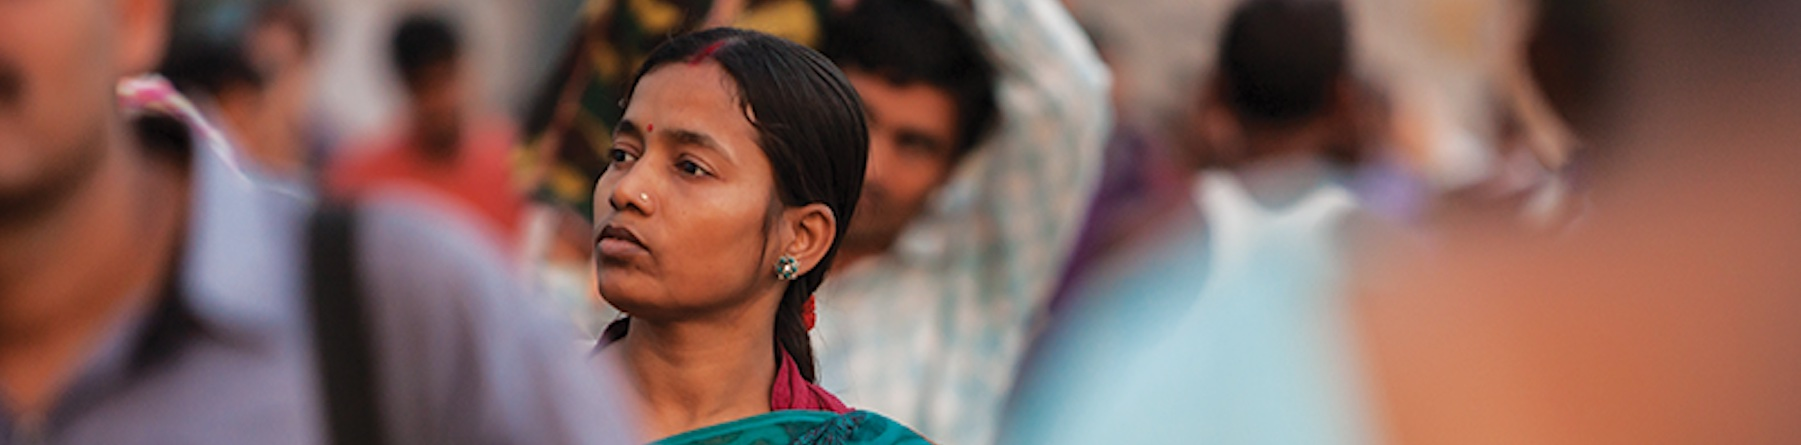 woman in a South Asia crowd